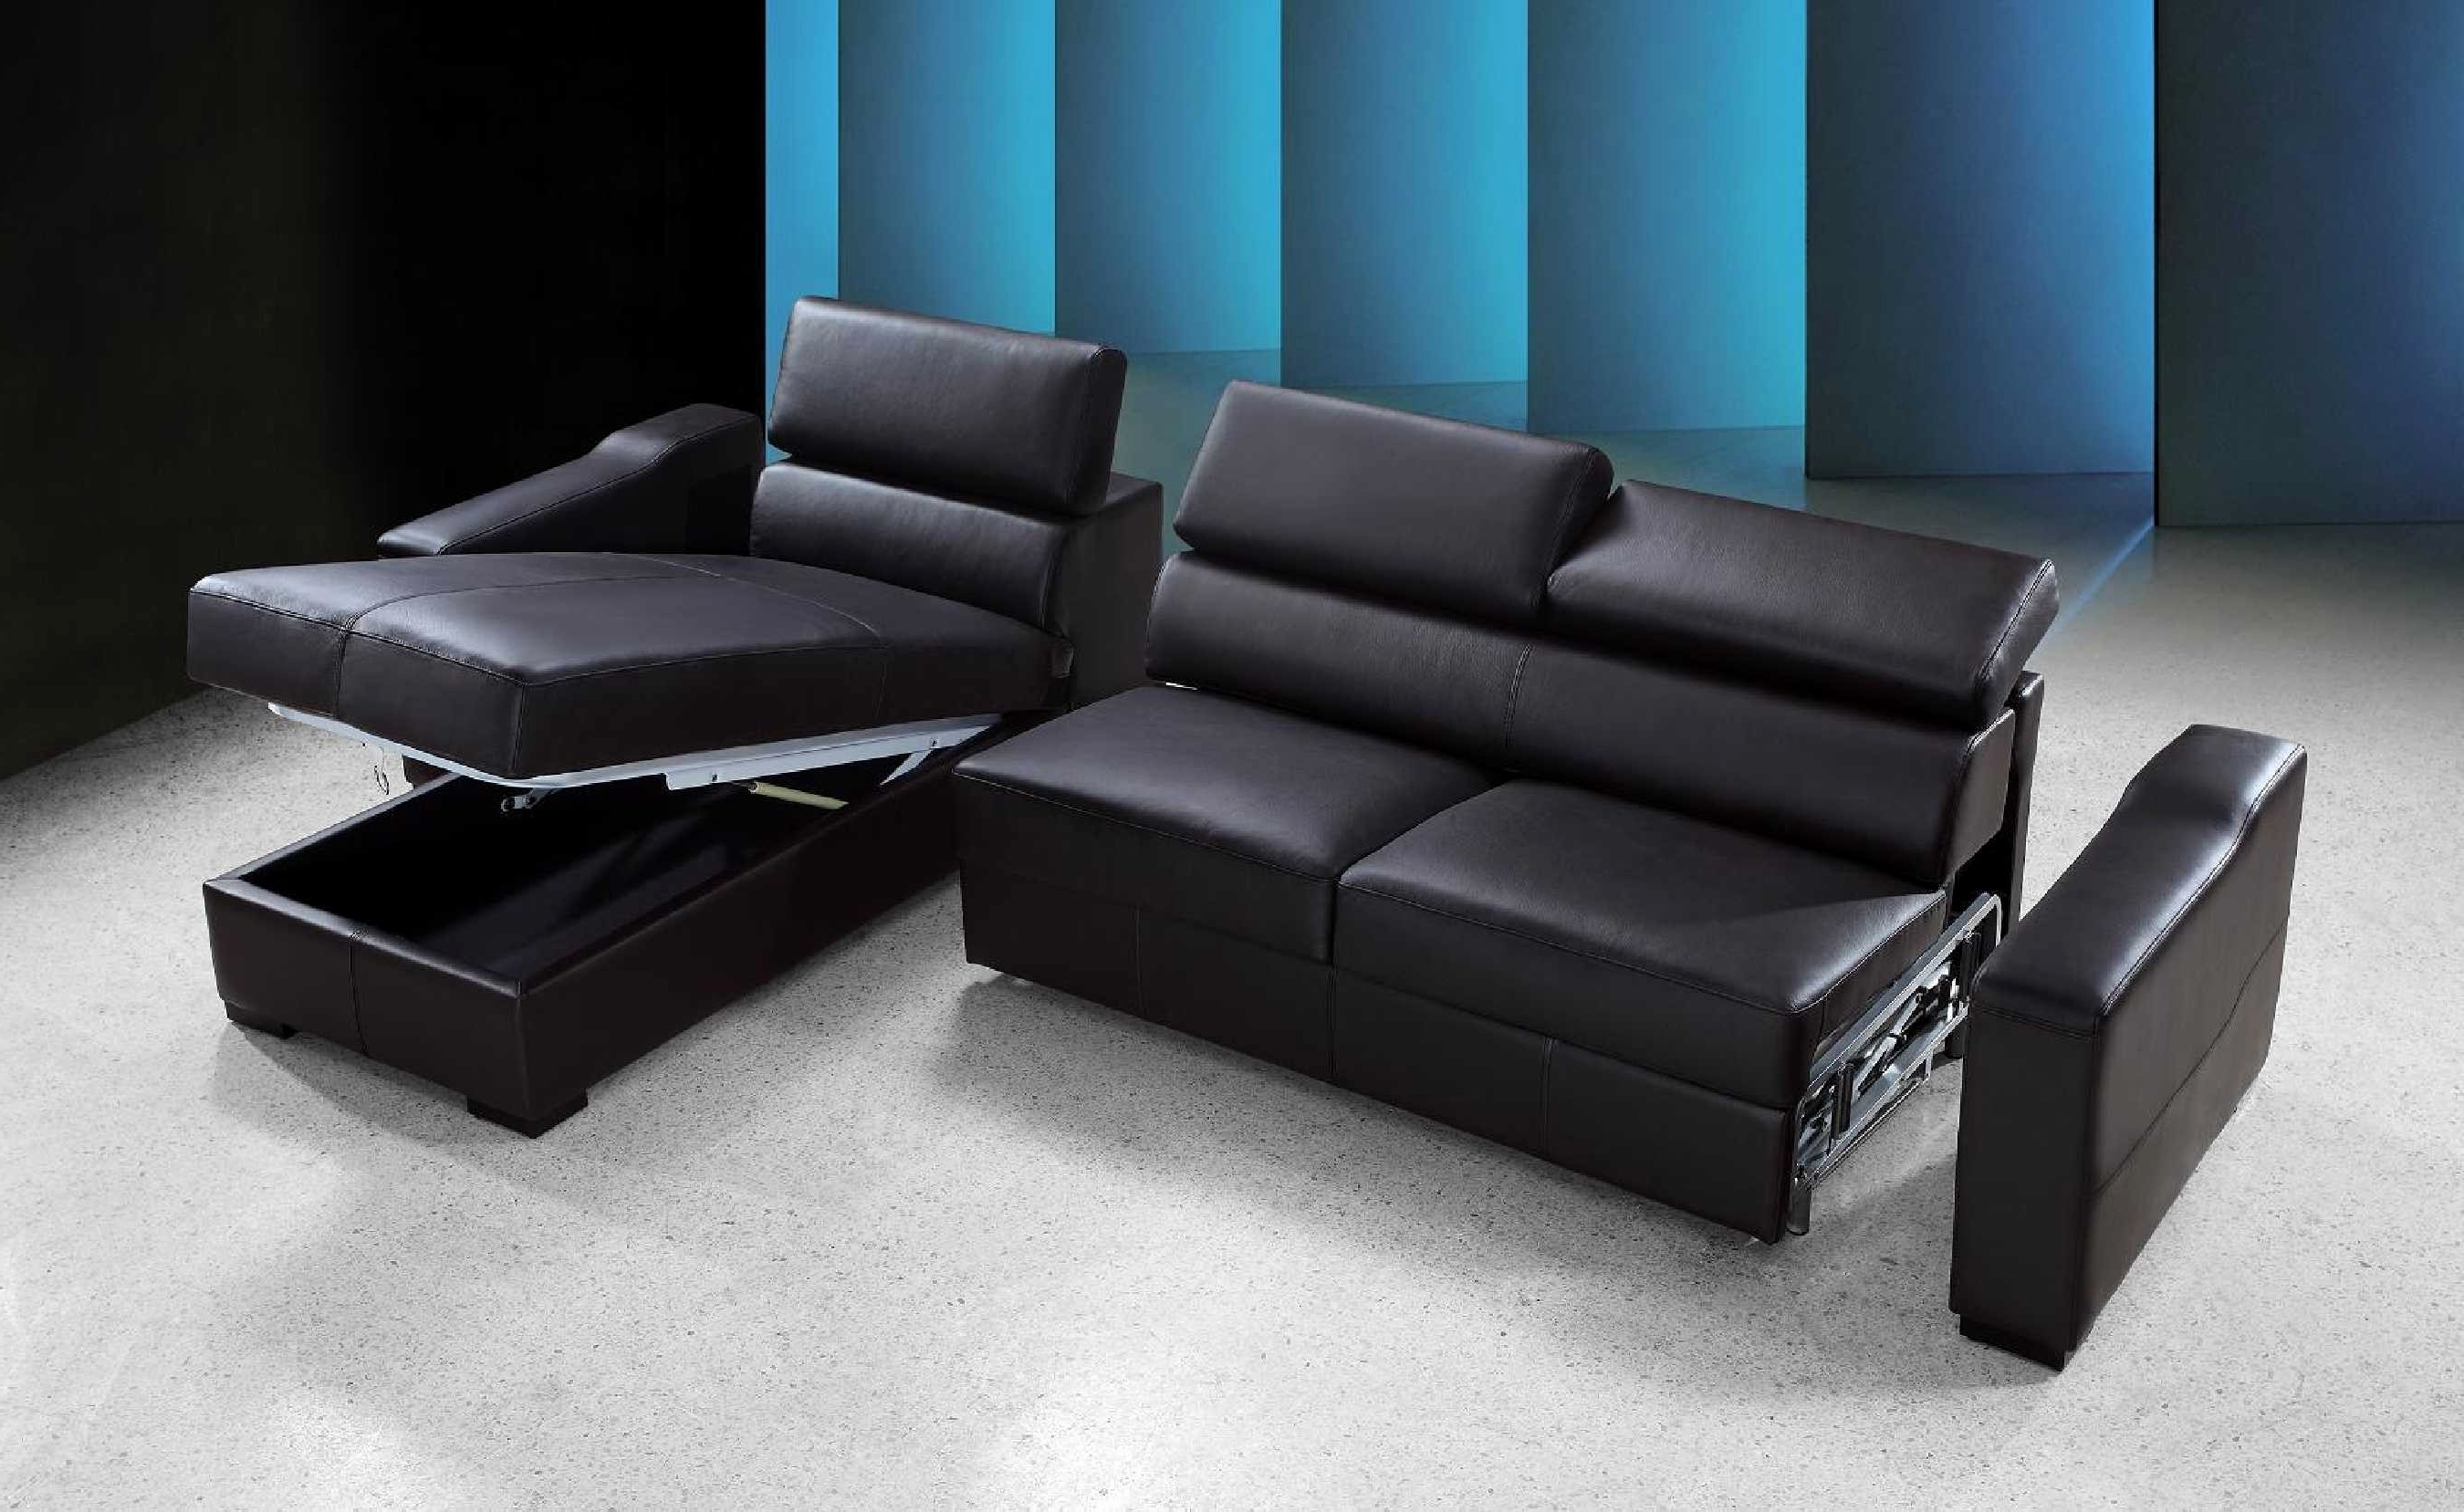 Sofas : Sofa Deals Broyhill Sofa Recliner Sofa Blue Leather Sofa L Intended For Popular Leather Sofas With Storage (View 8 of 15)